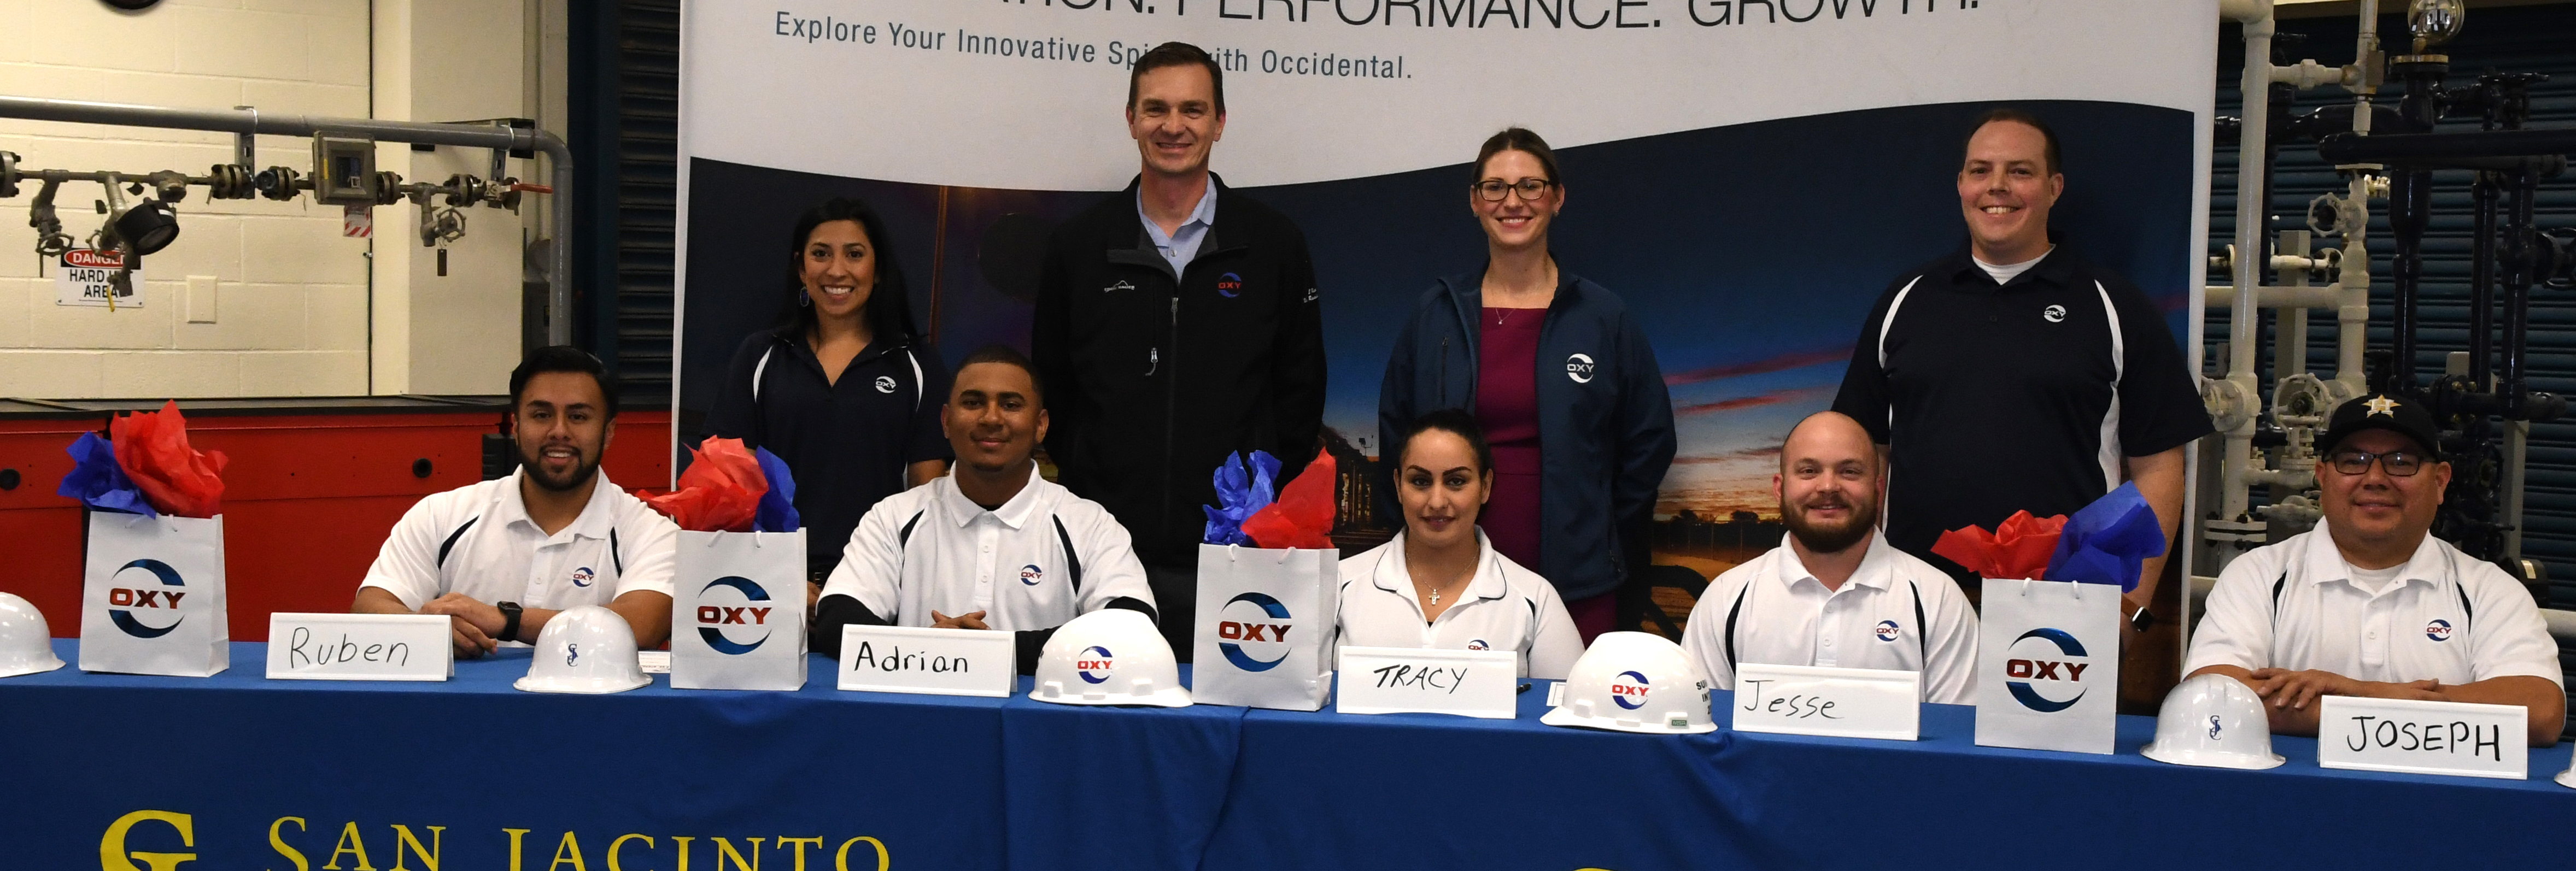 Process technology training pays off with careers at Occidental Petroleum